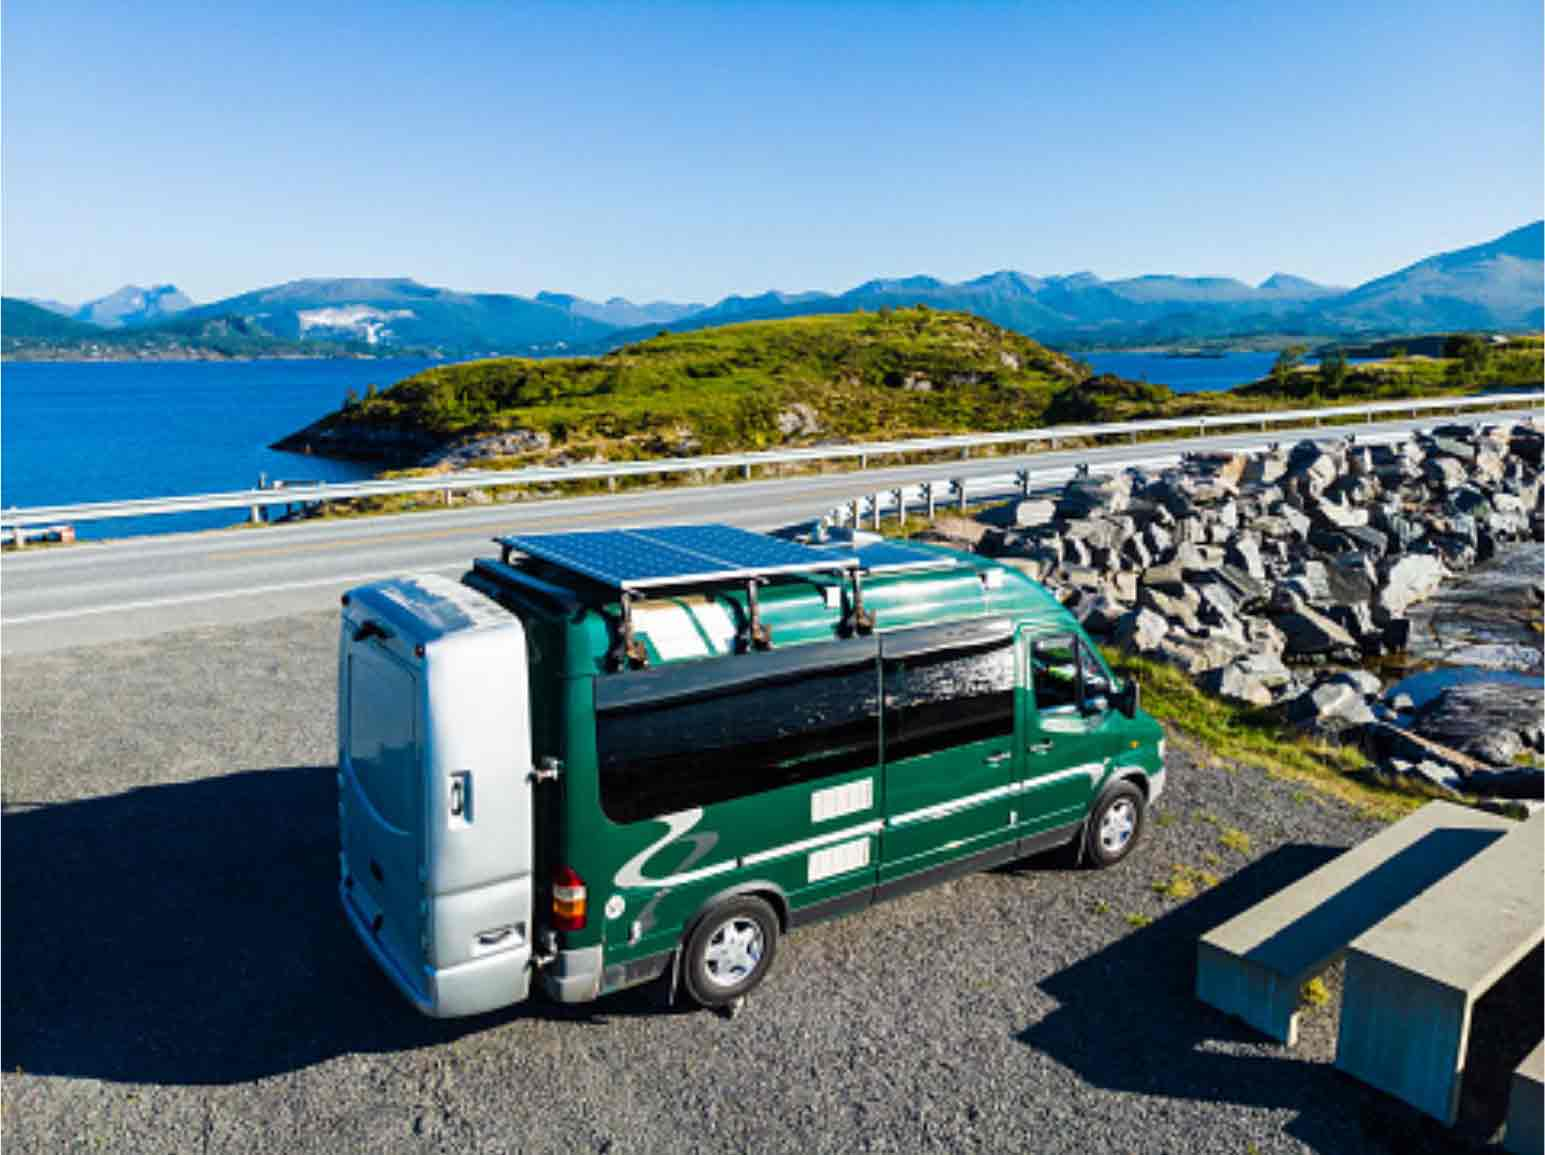 Best Solar Panels for your RV